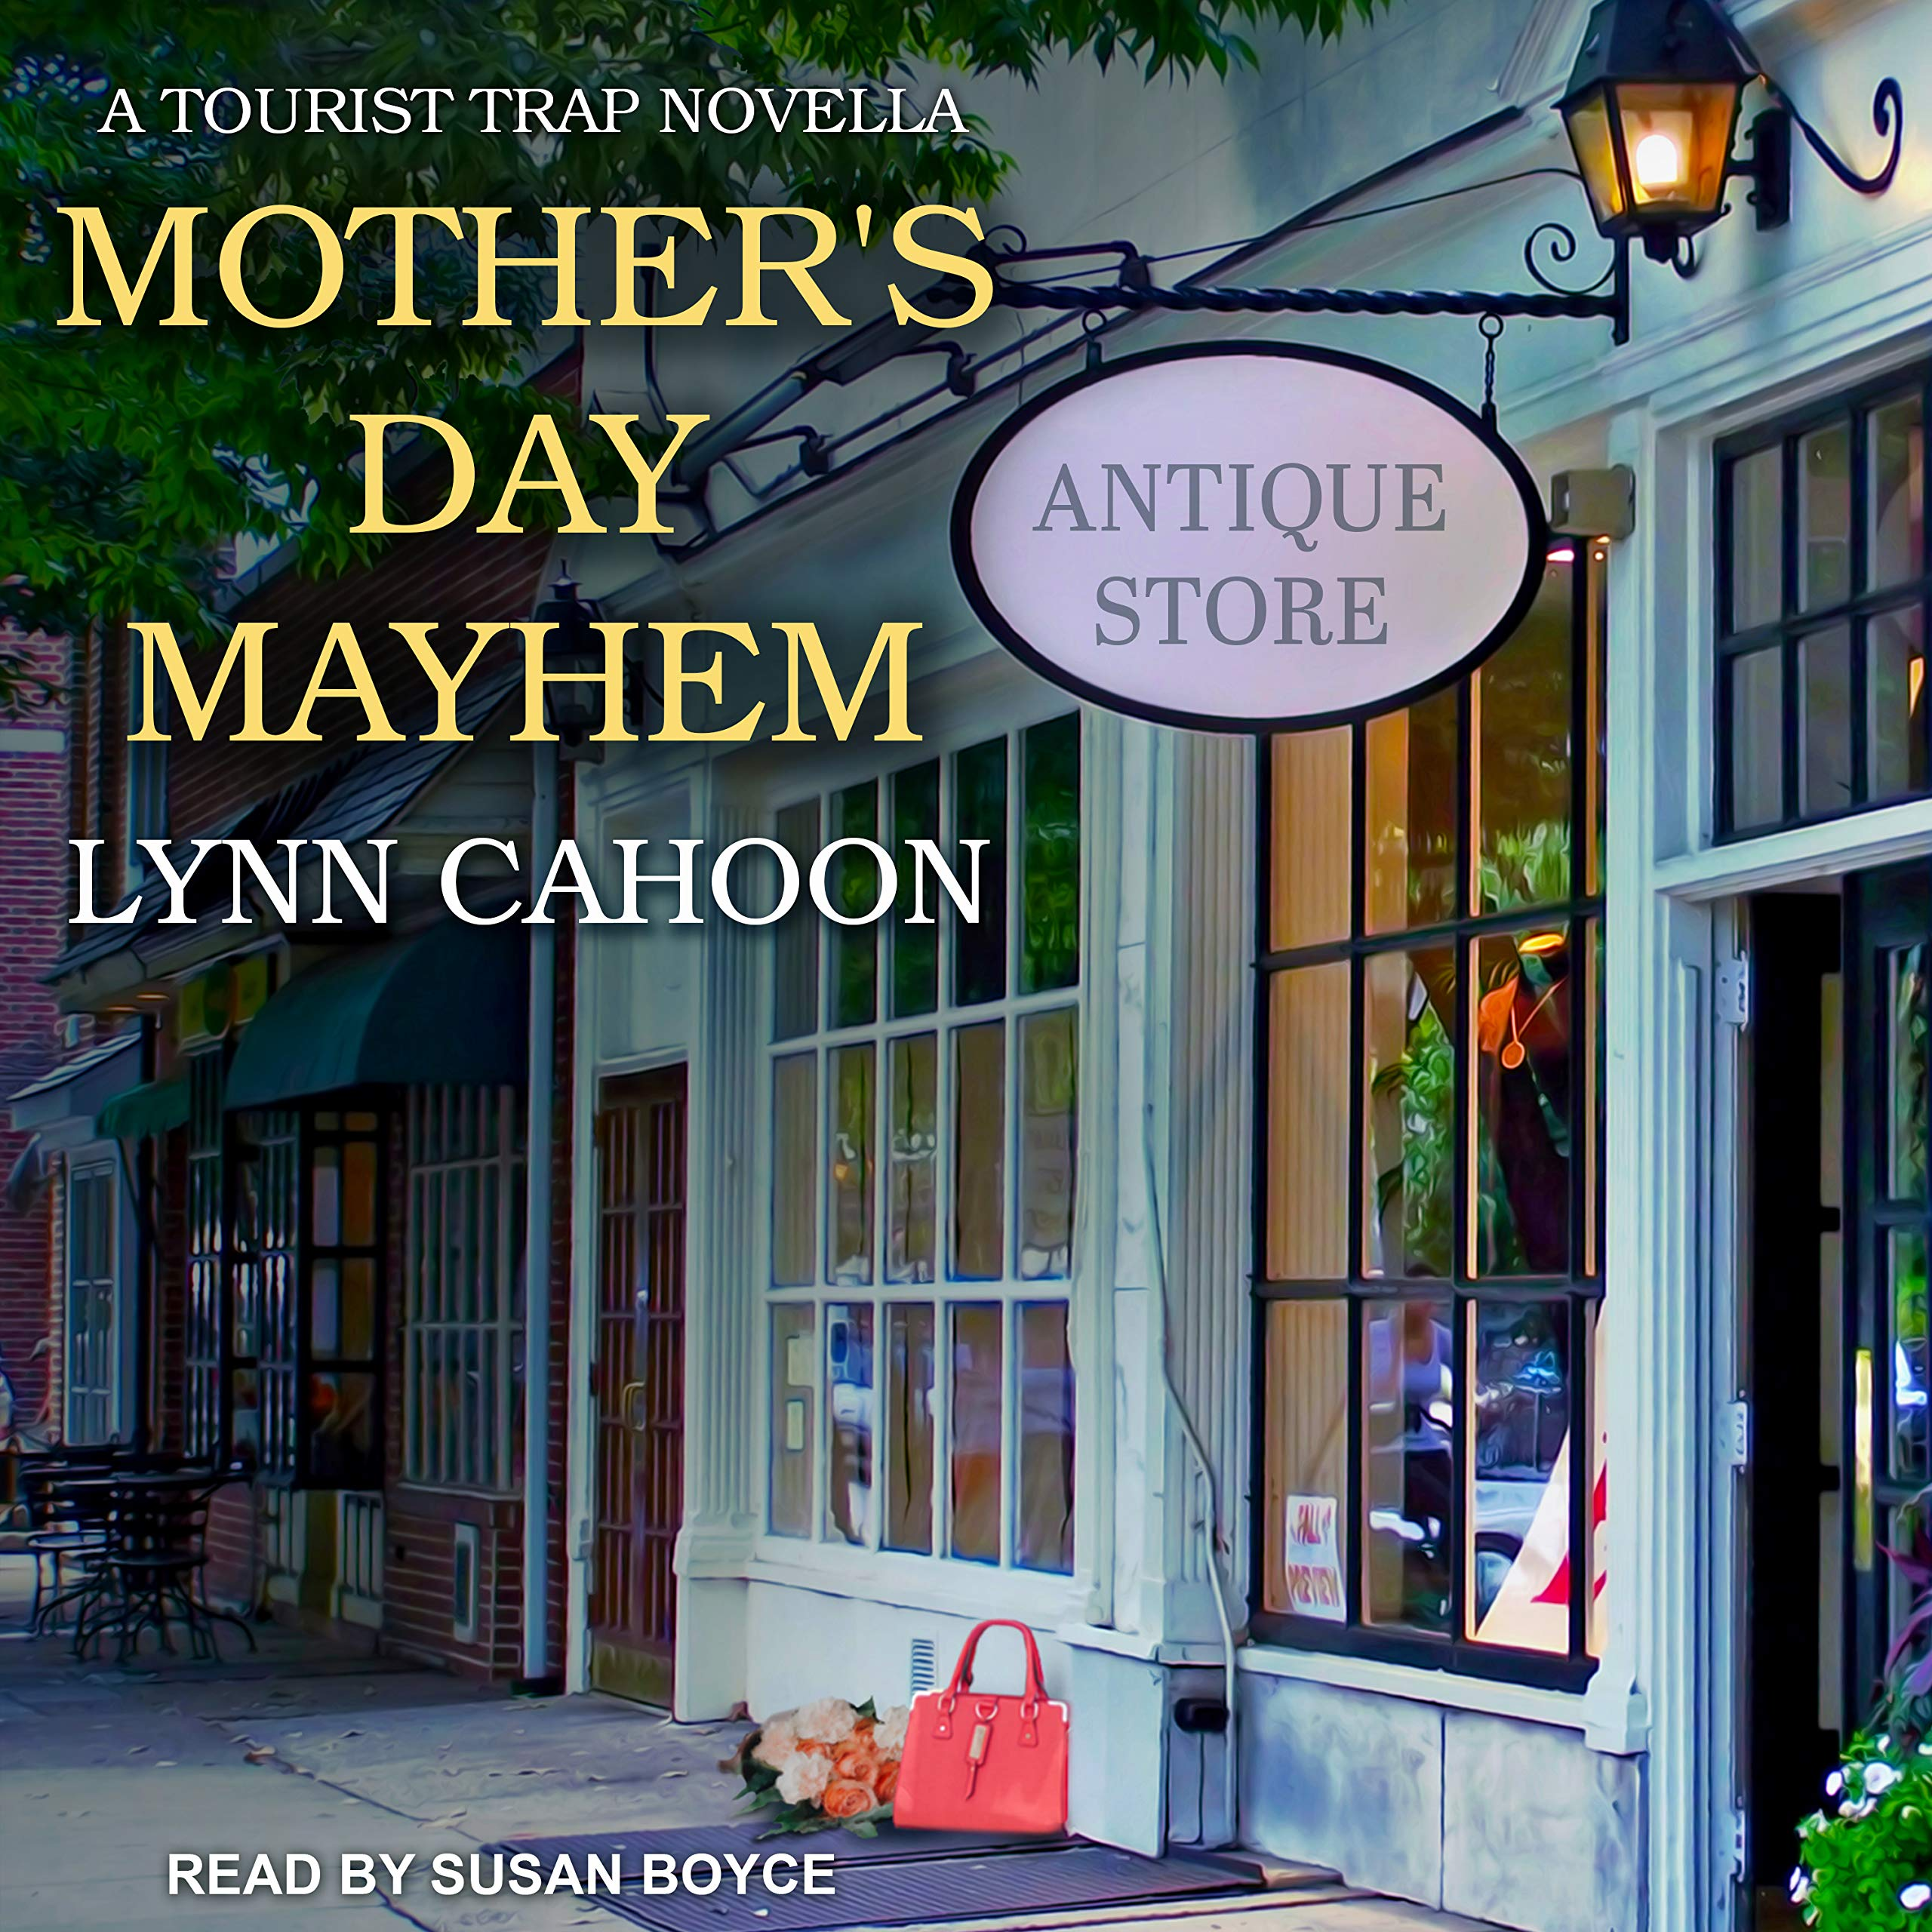 Buy Mother's Day Mayhem (Tourist Trap Mystery) Book Online at Low